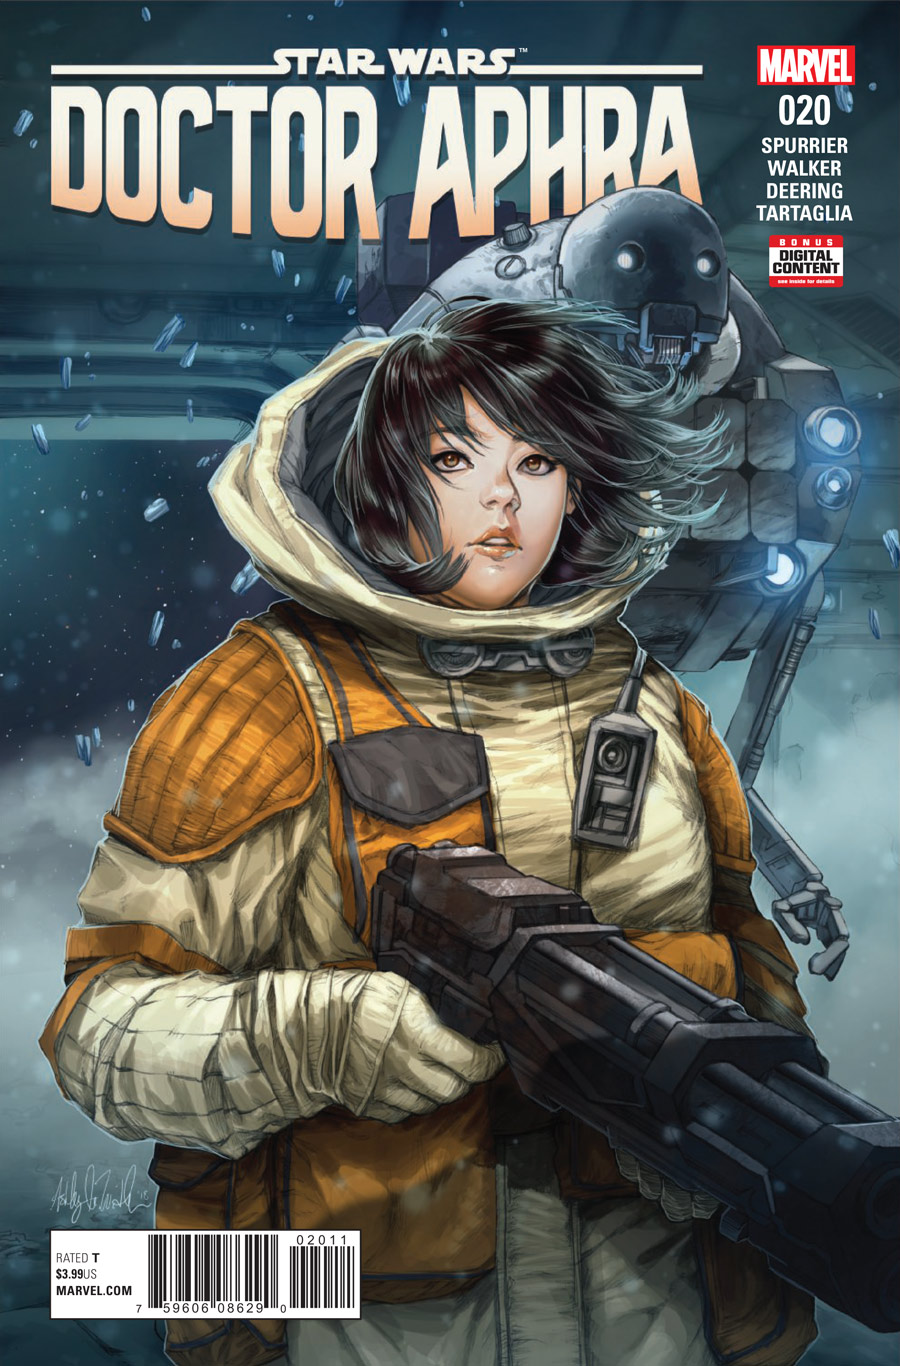 Doctor Aphra: A Reader's Guide to the Fan-Favorite Comic Book Character